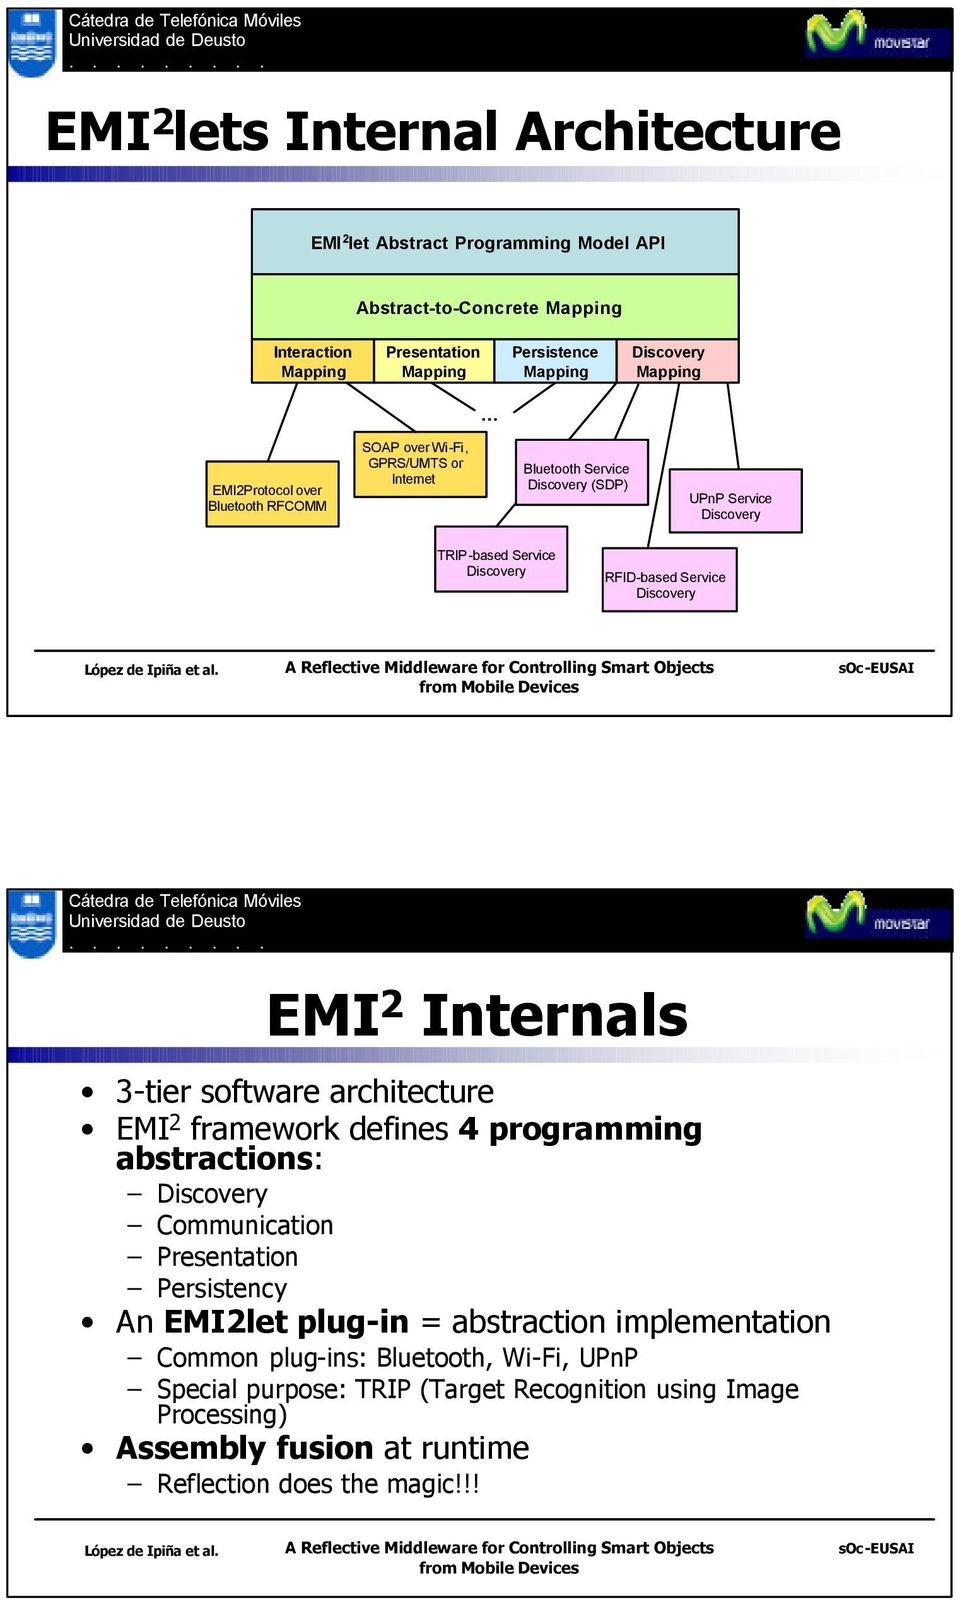 Service Discovery EMI 2 Internals 3-tier software architecture EMI 2 framework defines 4 programming abstractions: Discovery Communication Presentation Persistency An plug-in =